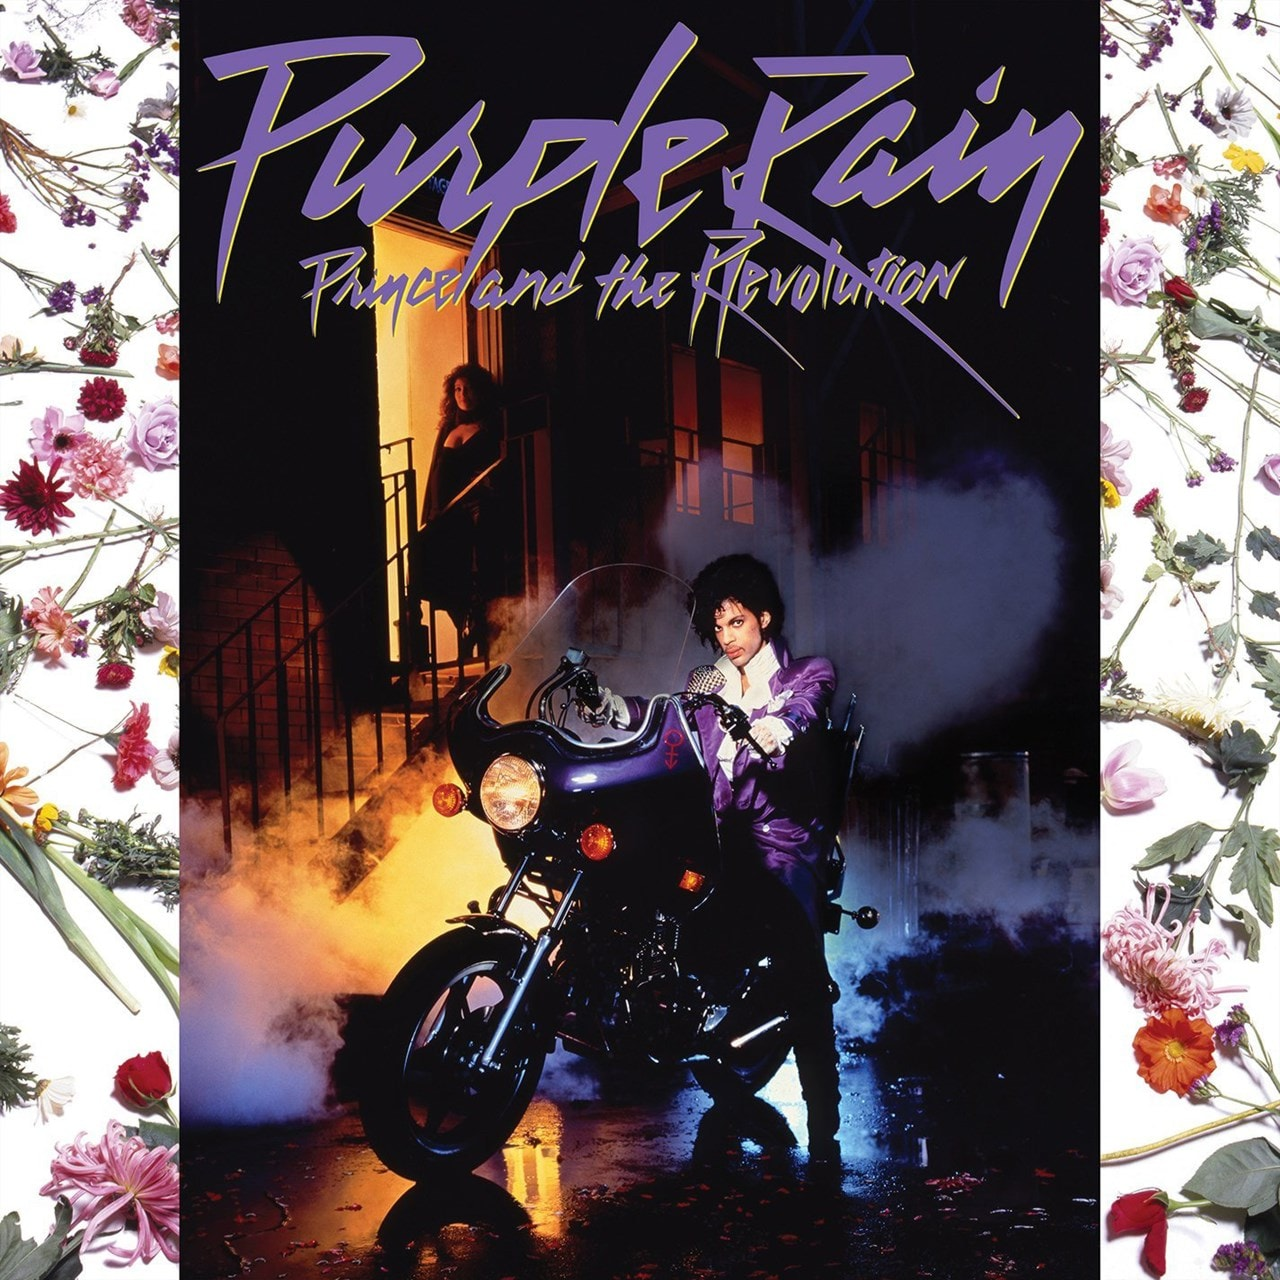 PRINCE AND THE REVOLUTION - PURPLE RAIN - VINYL LP - Wah Wah Records